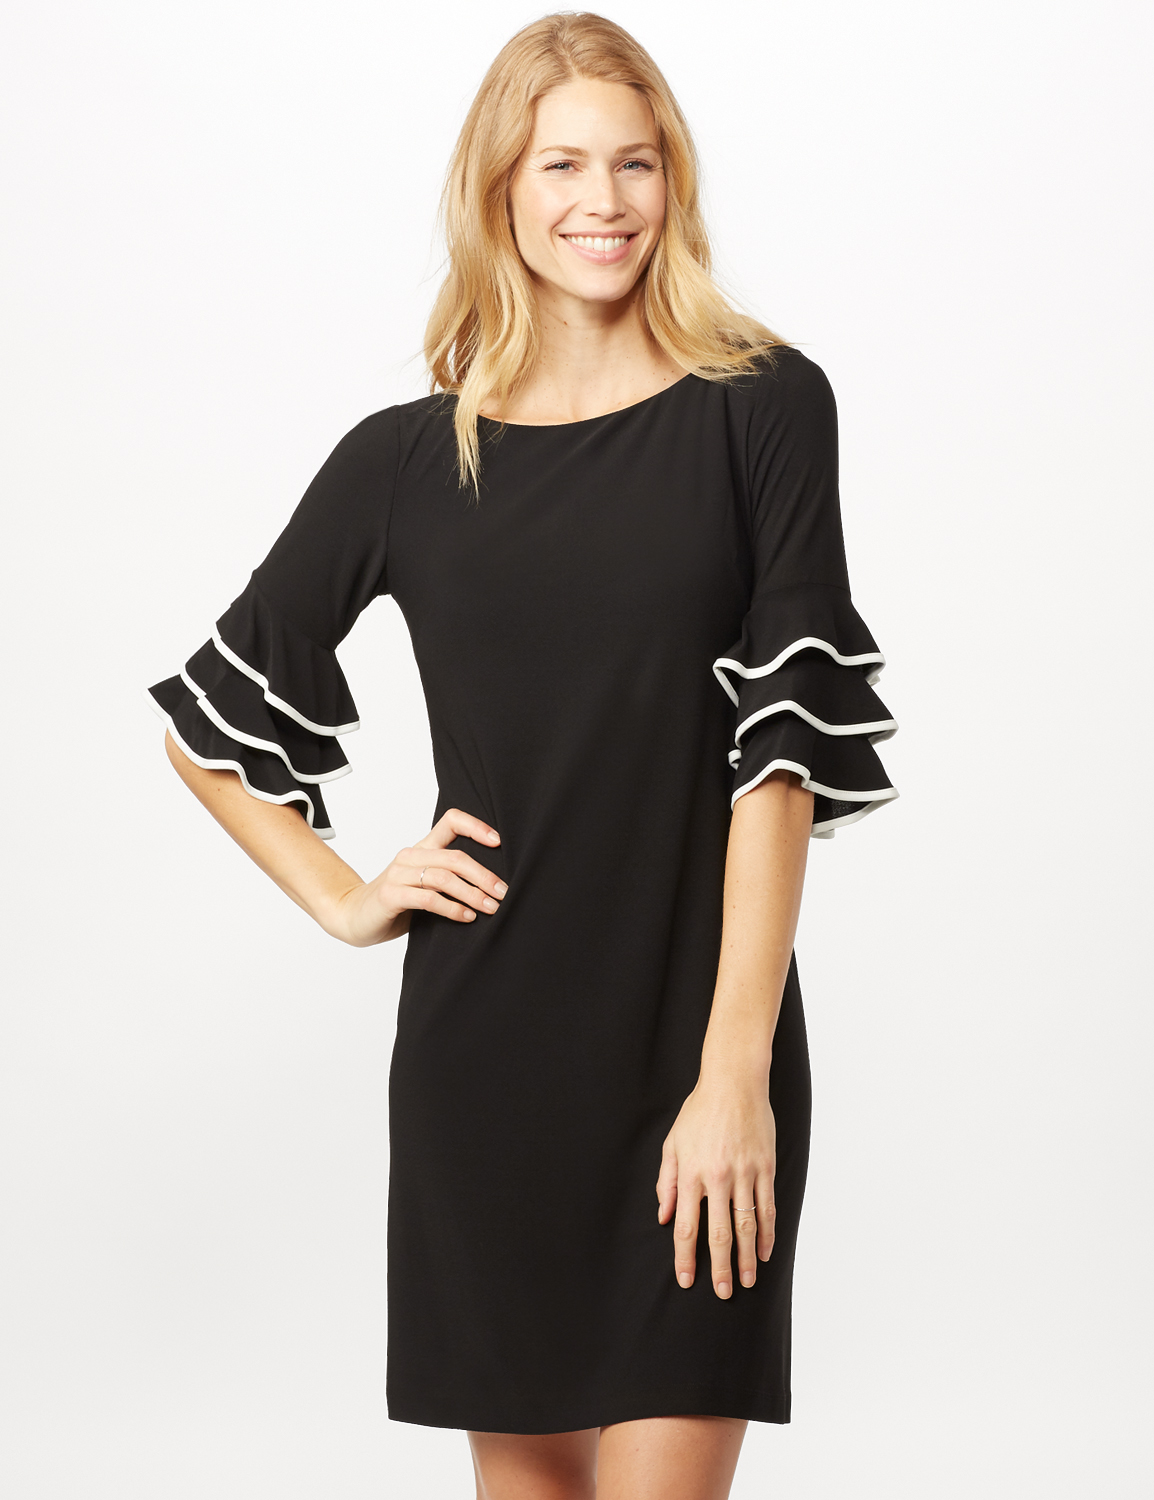 Ruffle Chacha Sleeve Sheath Dress -Black/ivory - Front